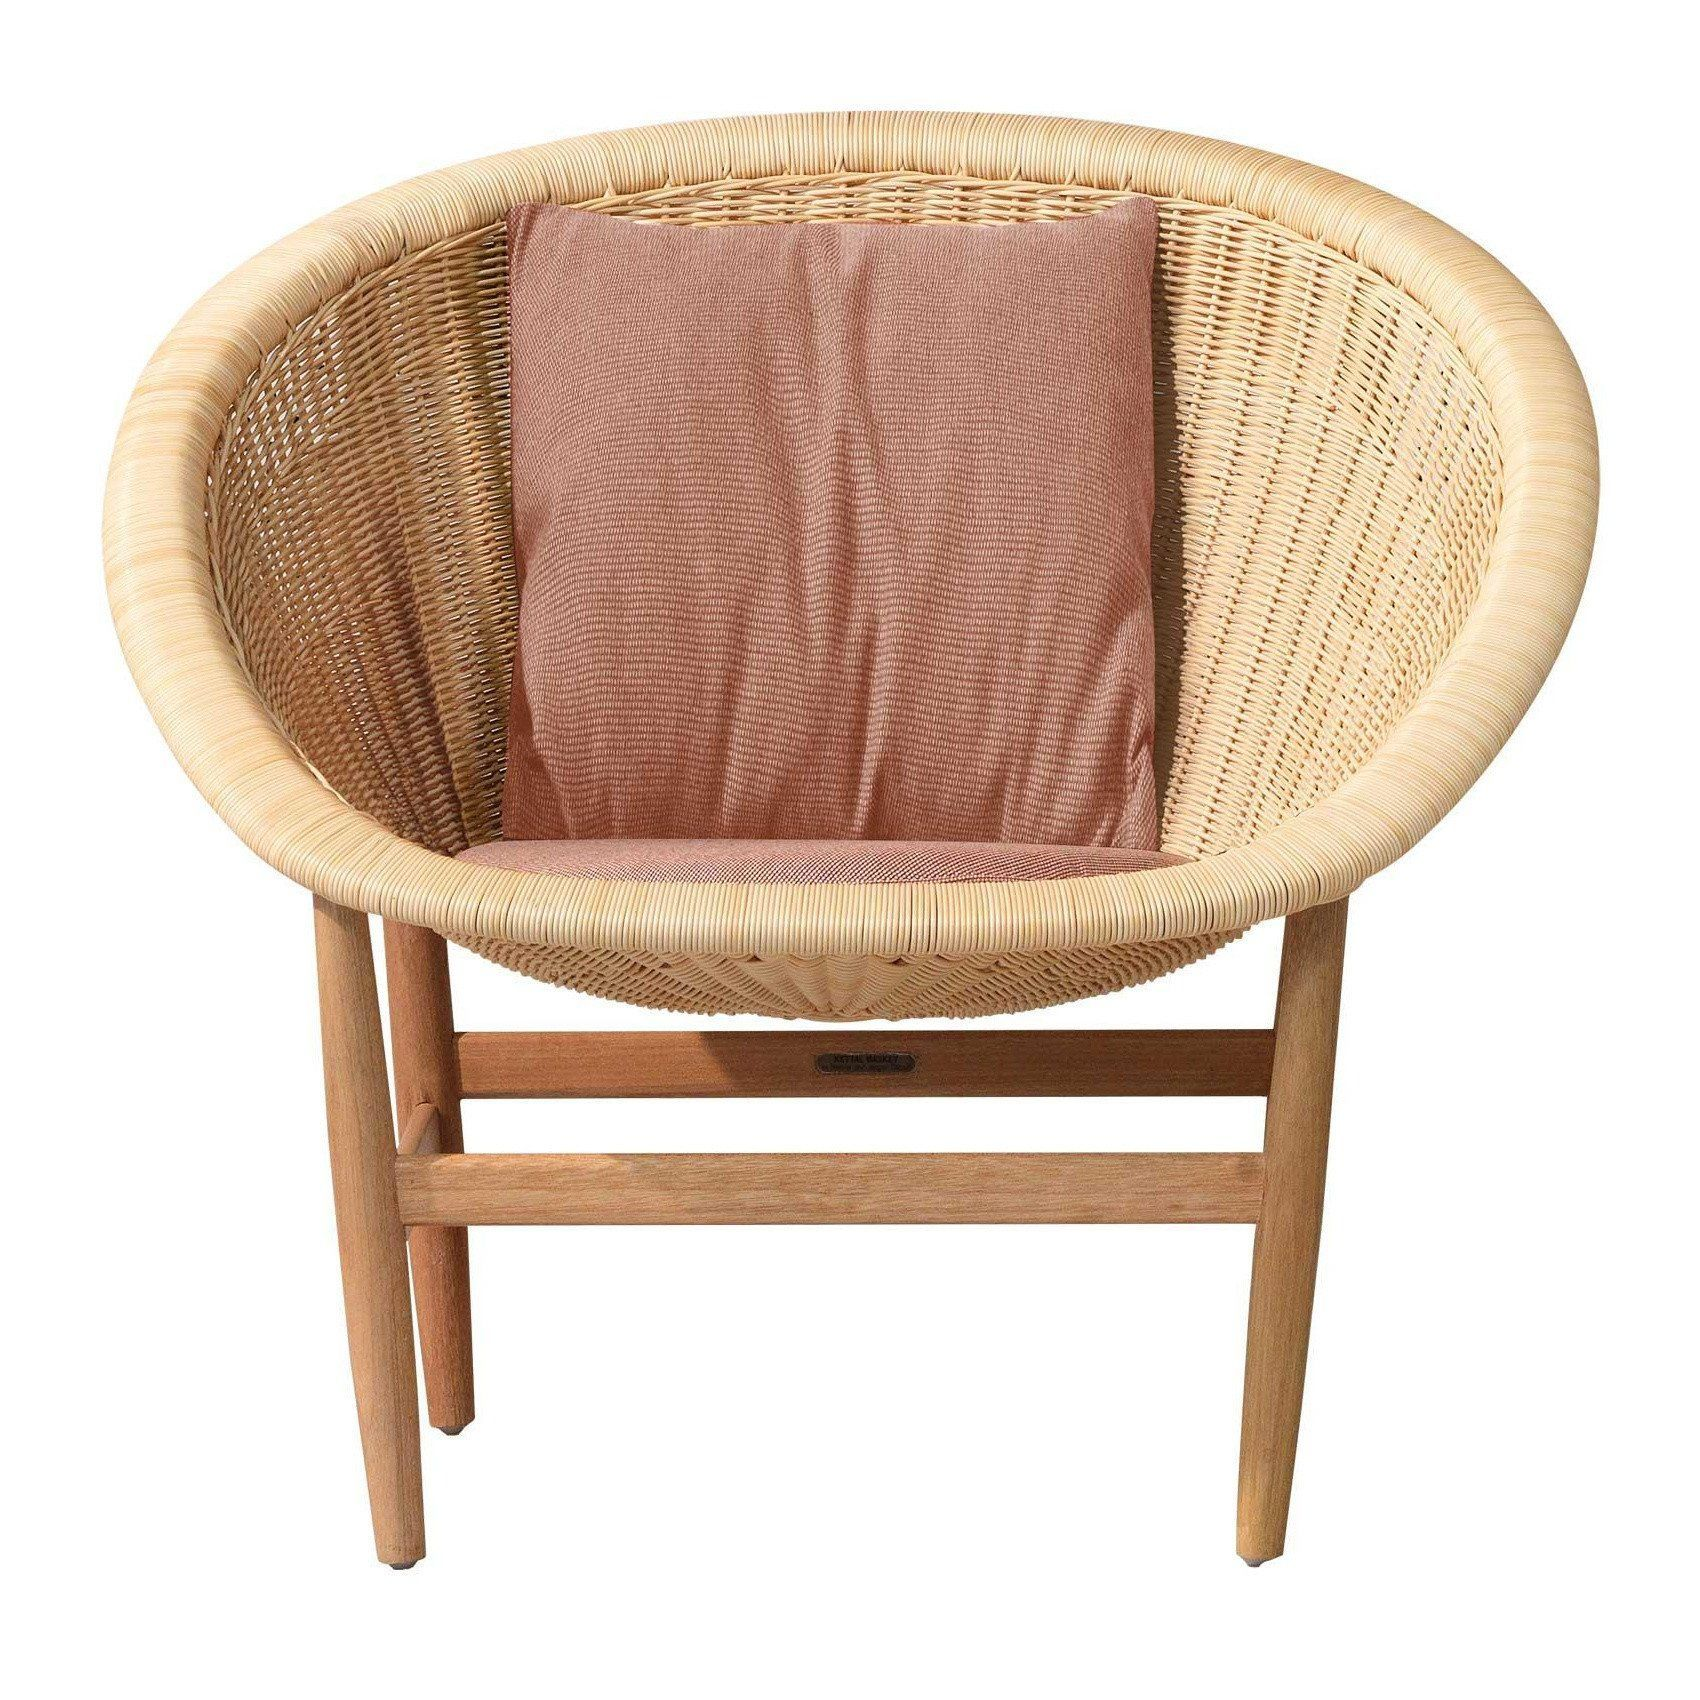 chairs chair lounge salt classic detail martin product club home kathy outdoor modern wrapped san rope kuo palecek